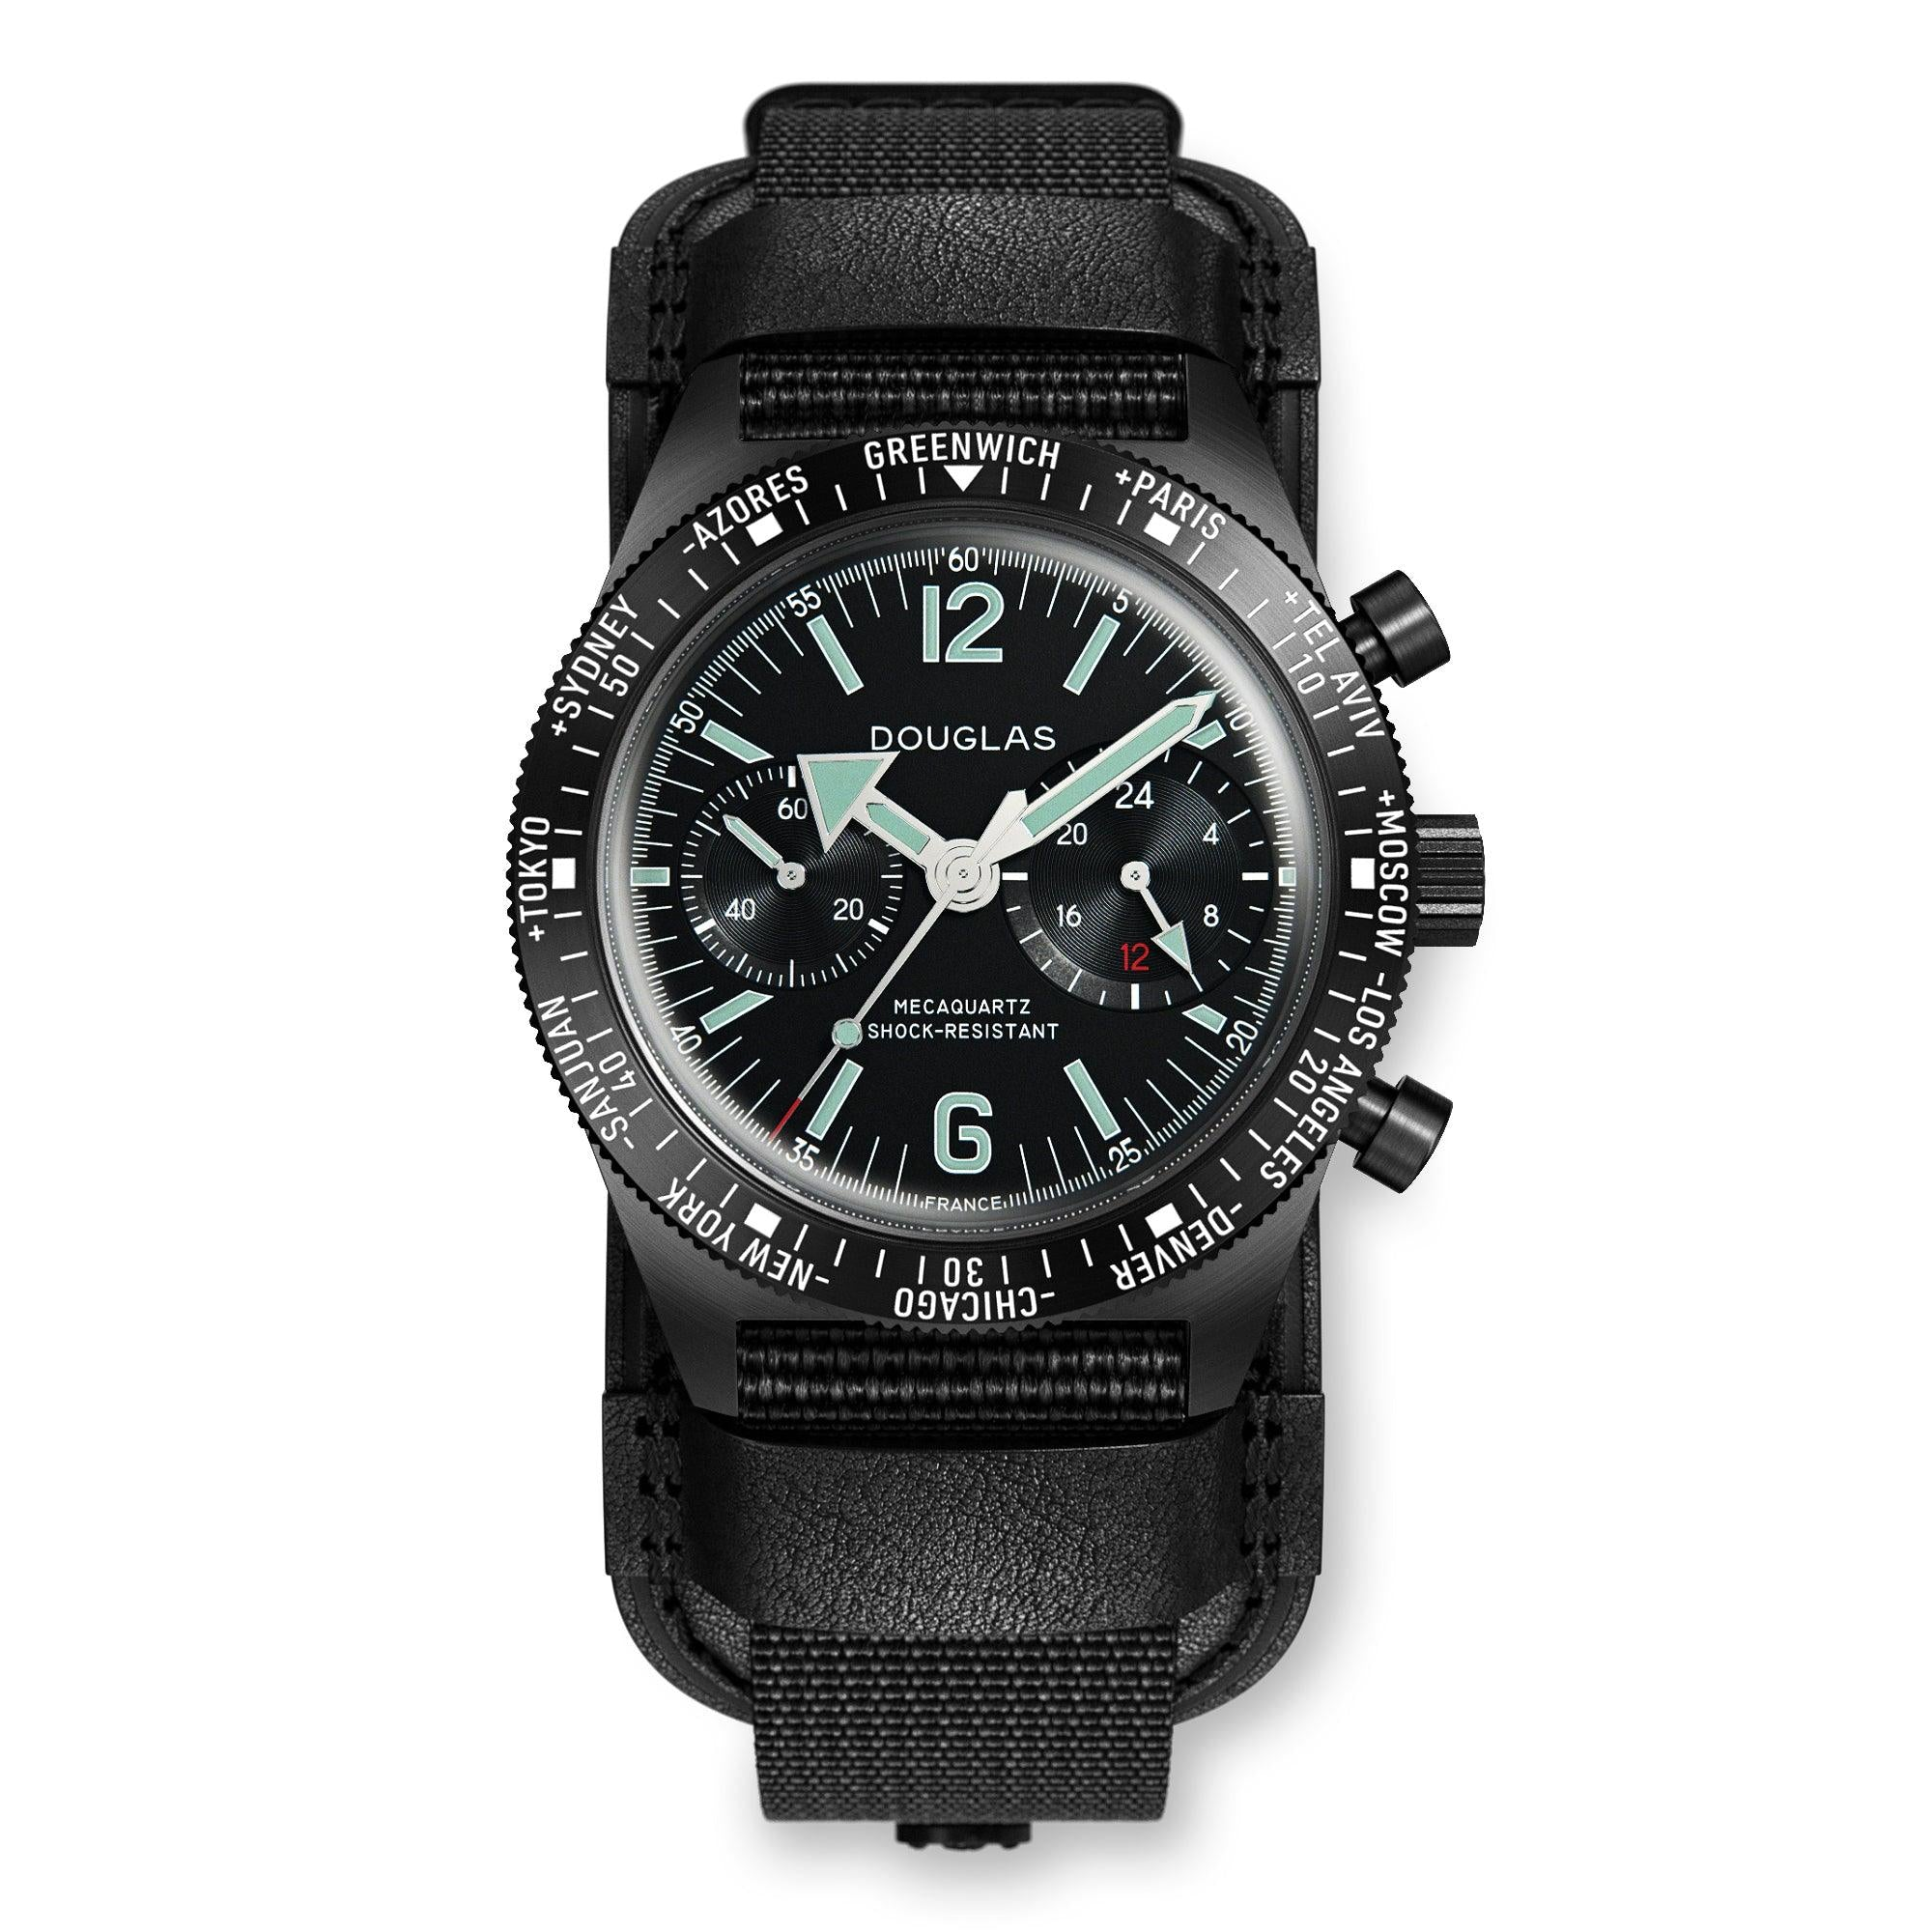 Skindiver WT Professional Chrono-Mecaquartz Black PVD Big Eye Chronograph